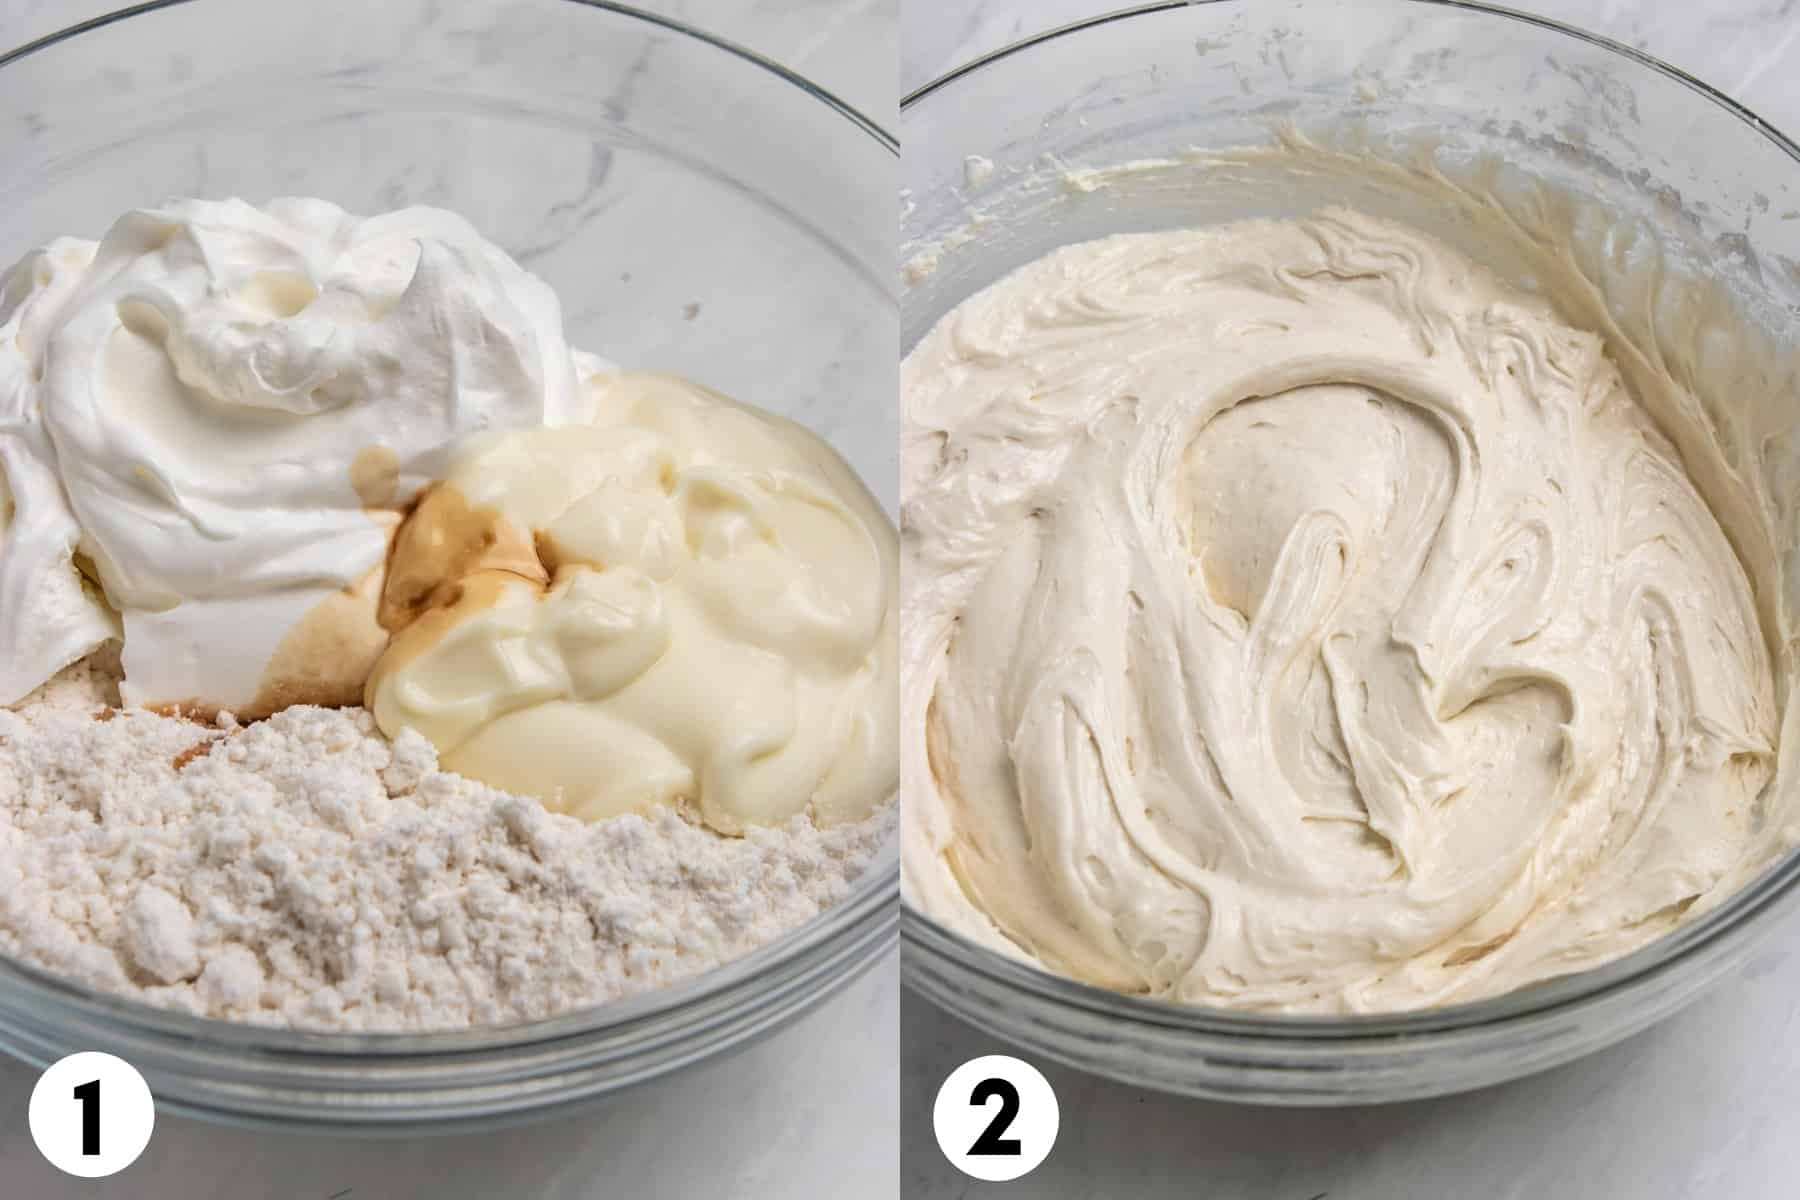 Cake mix and other ingredients in mixing bowl and then after mixed.